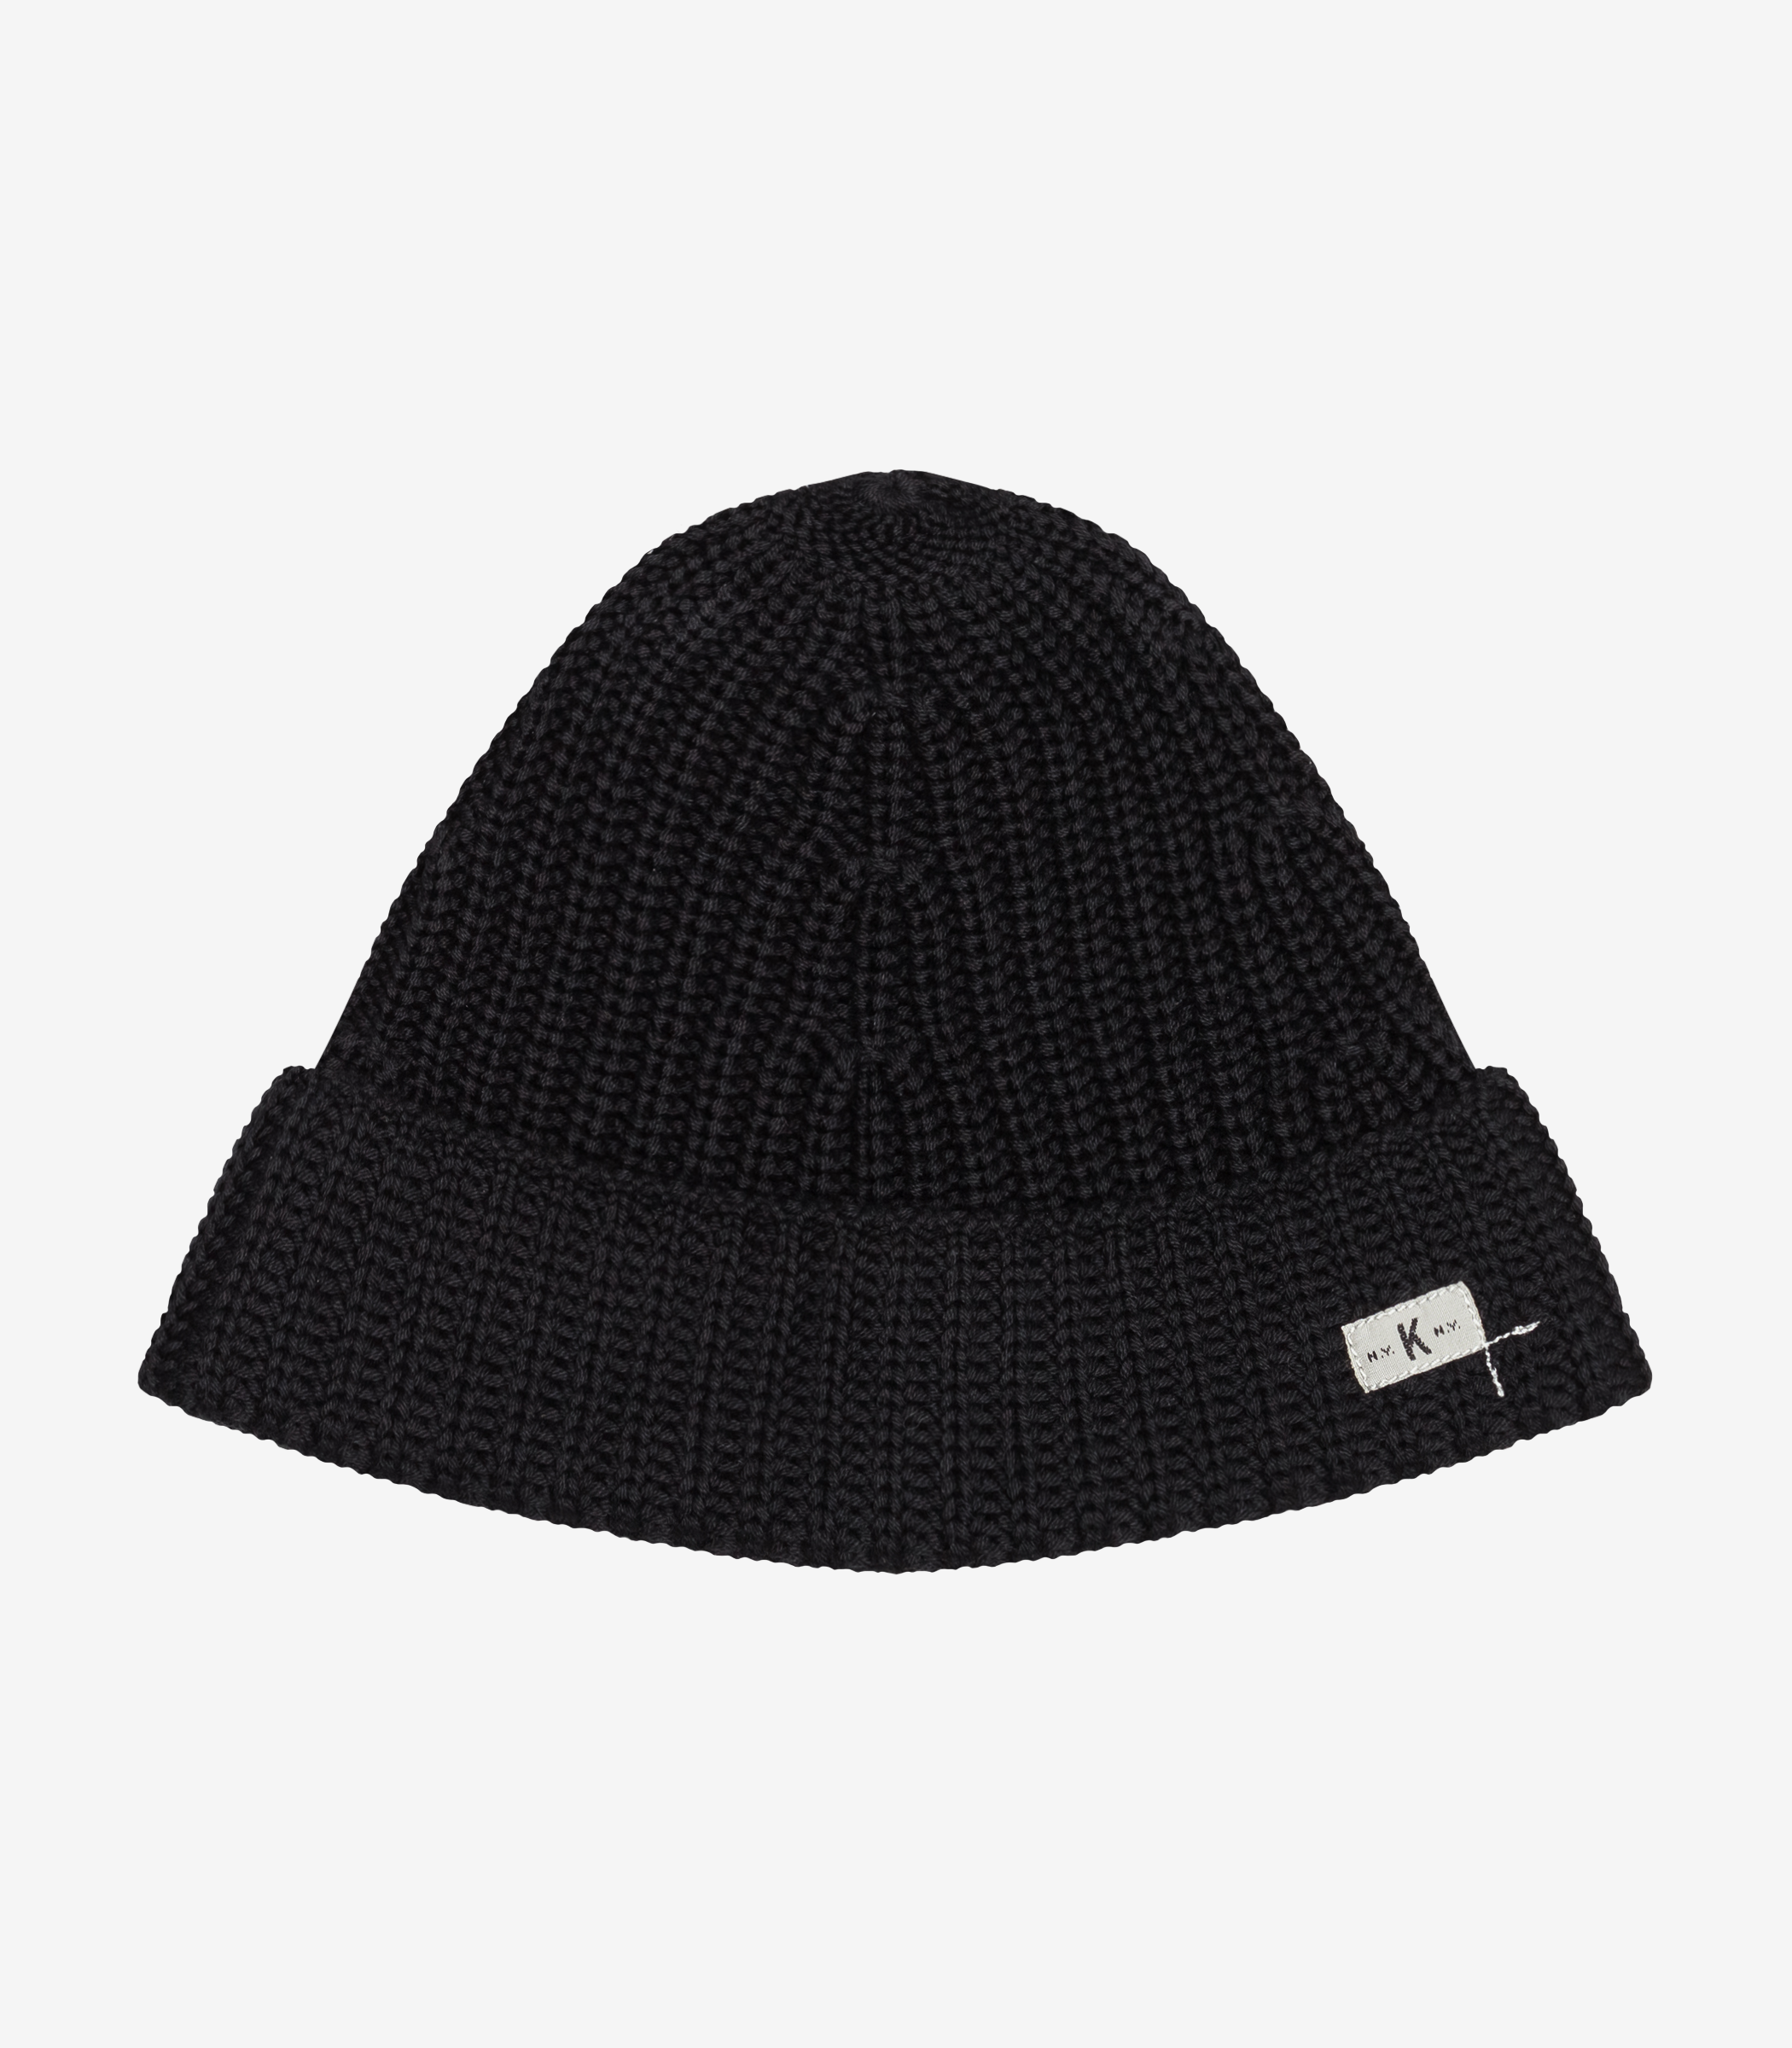 beanie product photography